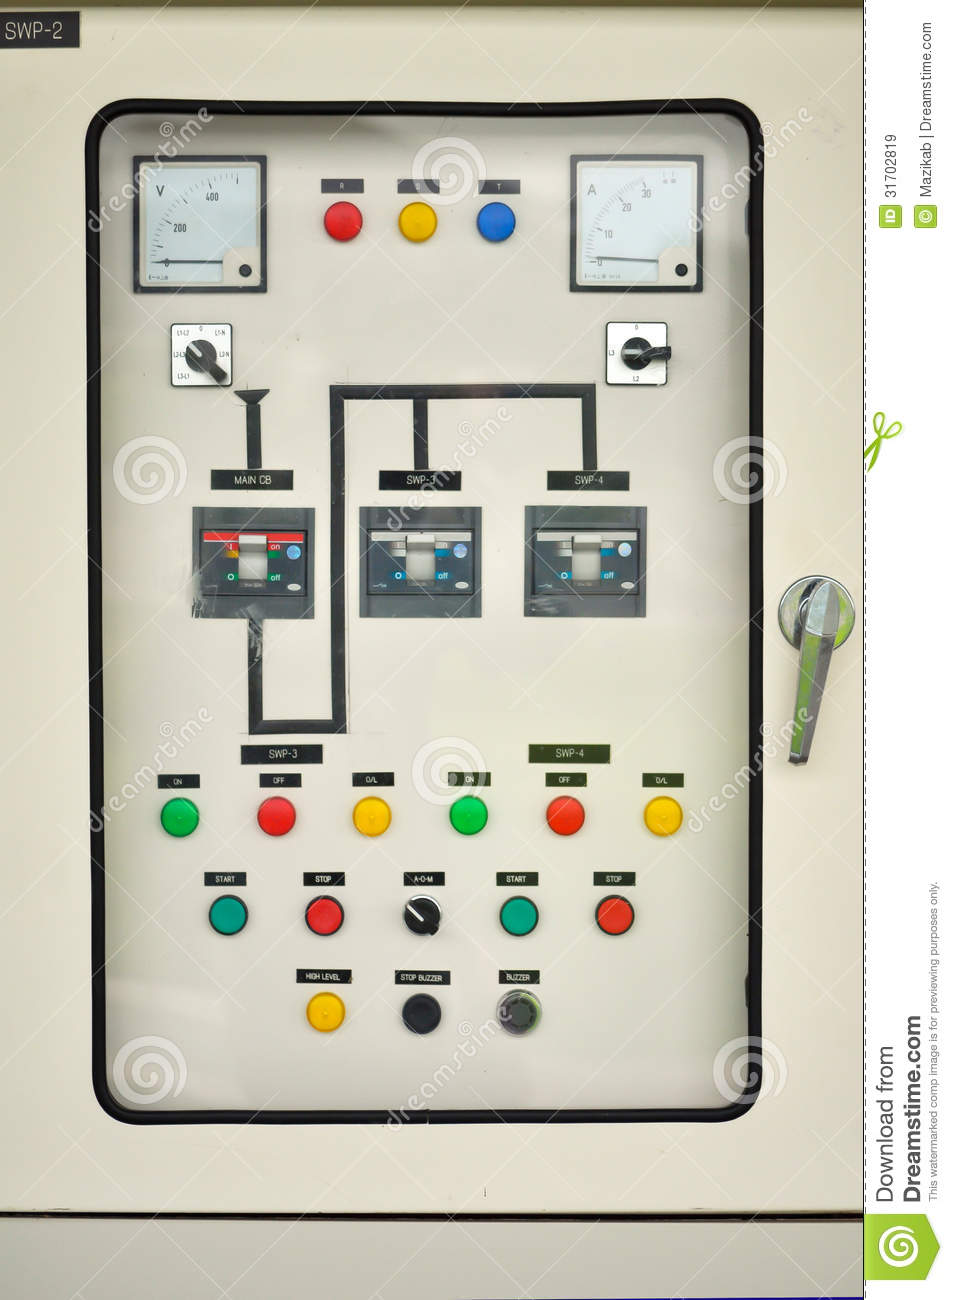 medium resolution of electric control system in an office building